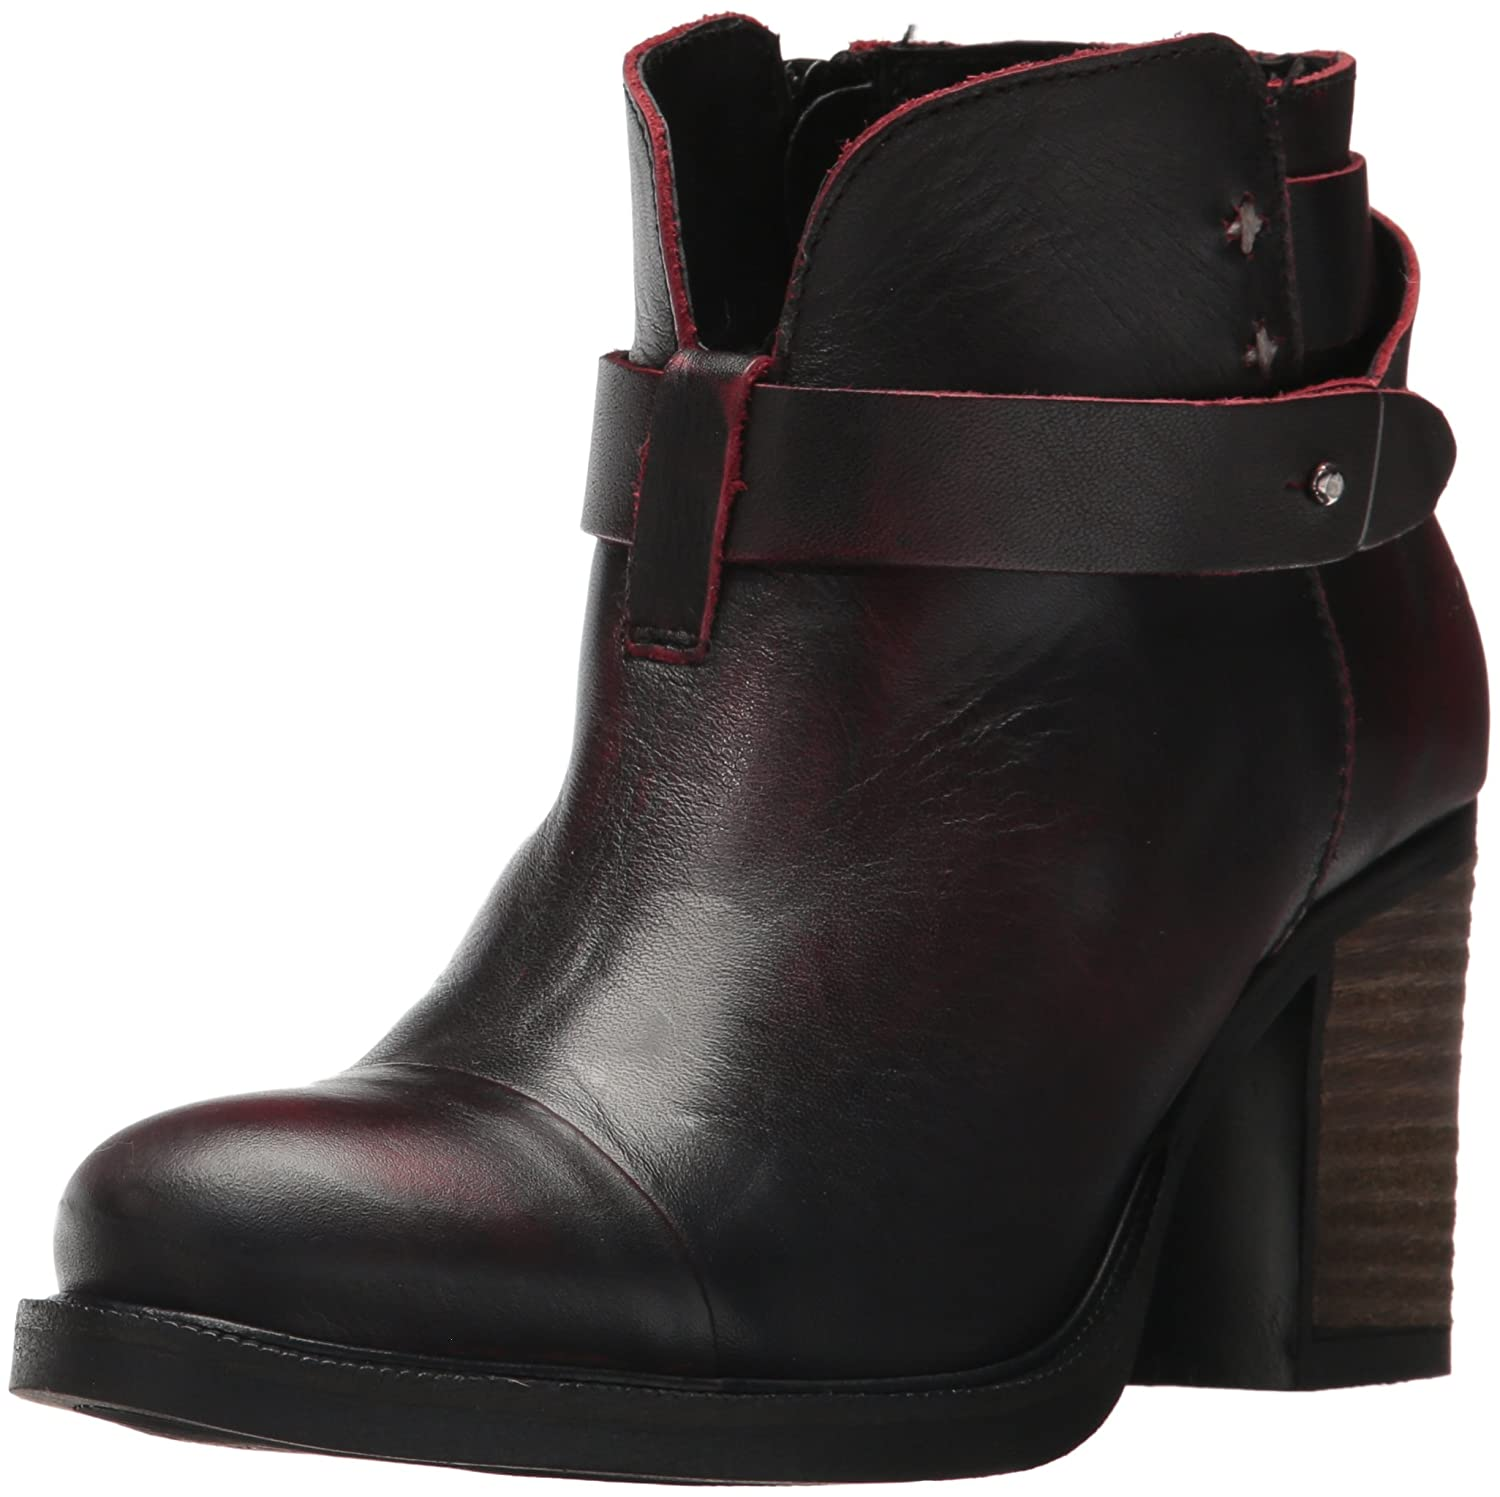 Bos. & Co. Women's Bonne Ankle Boot B06WXX7MHT 37 M EU (6.5-7 US)|Bordo Batidune Leather